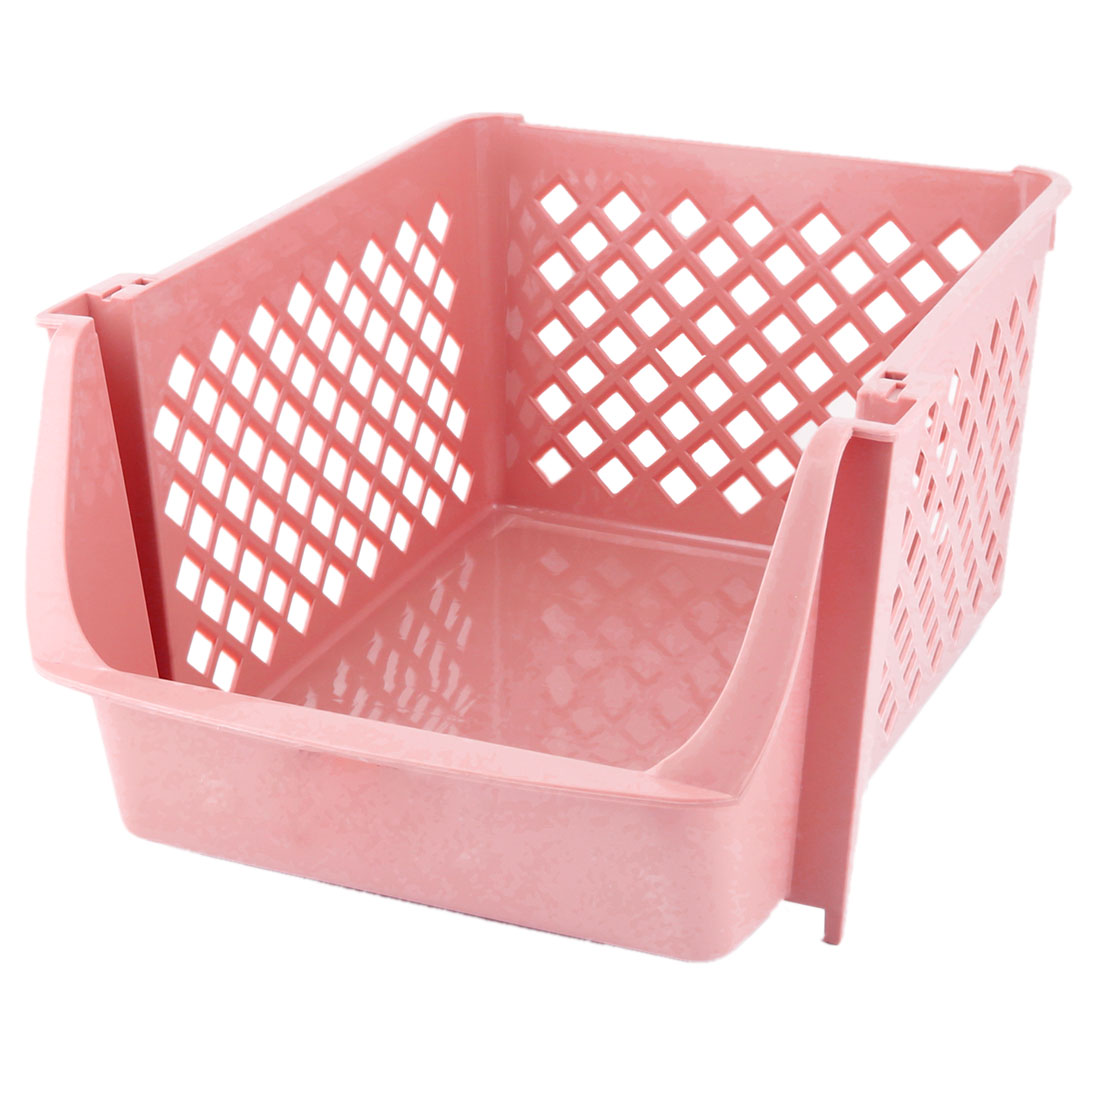 Unique BargainsKitchen Plastic Square Shaped Vegetable Beer Storage Basket Container Coral Pink